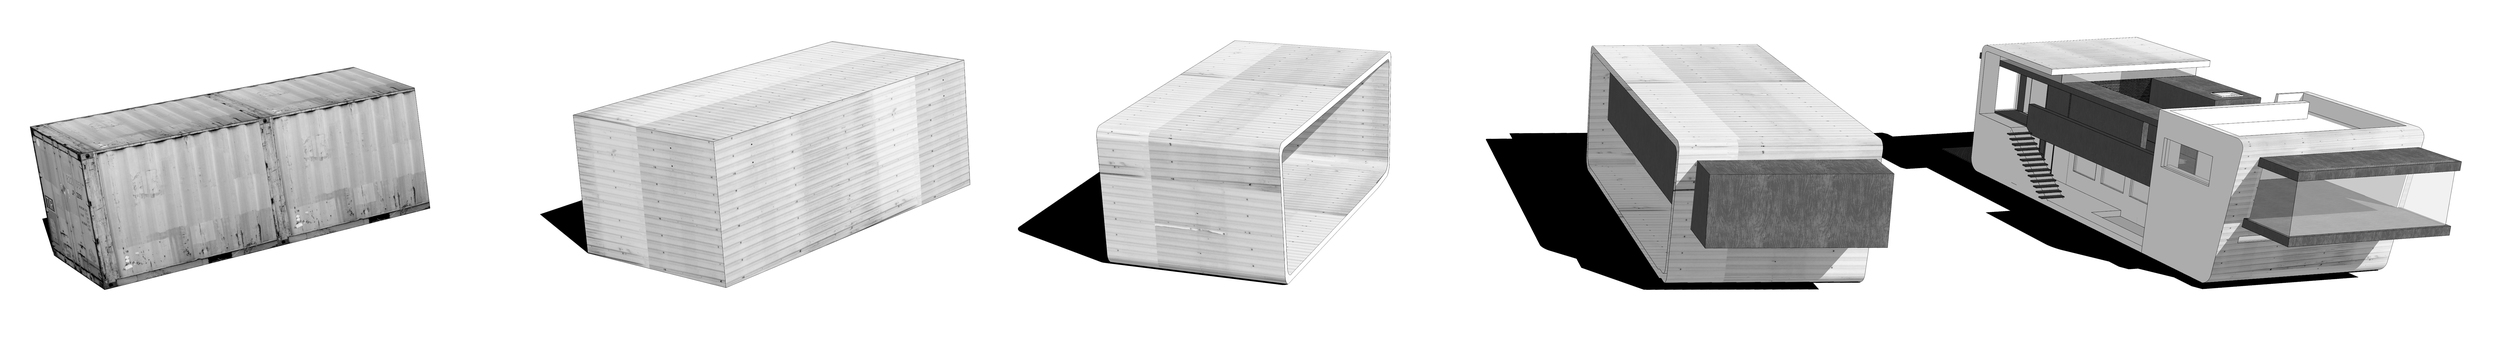 container series bw.jpg